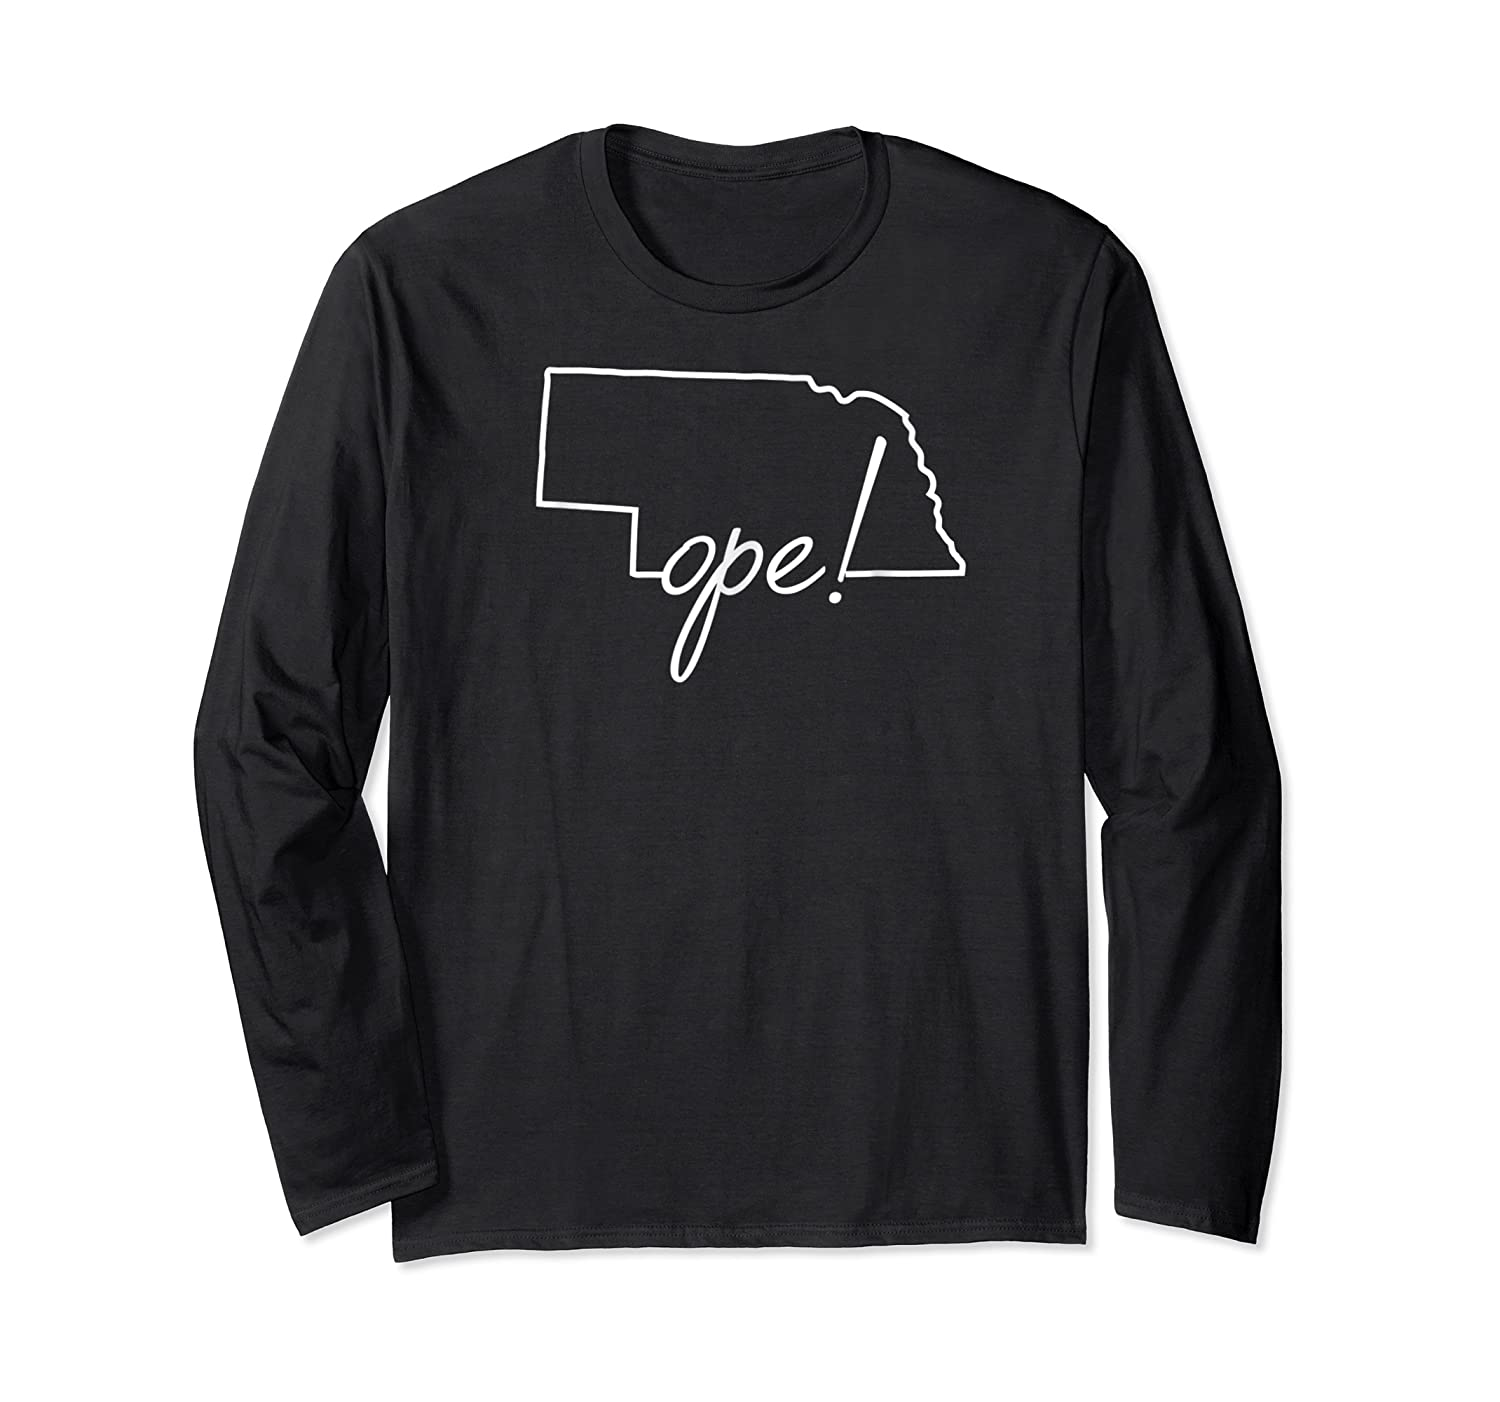 Ope Nebraska Shirt Funny Midwest Culture Phrase Saying Gift Long Sleeve T-shirt